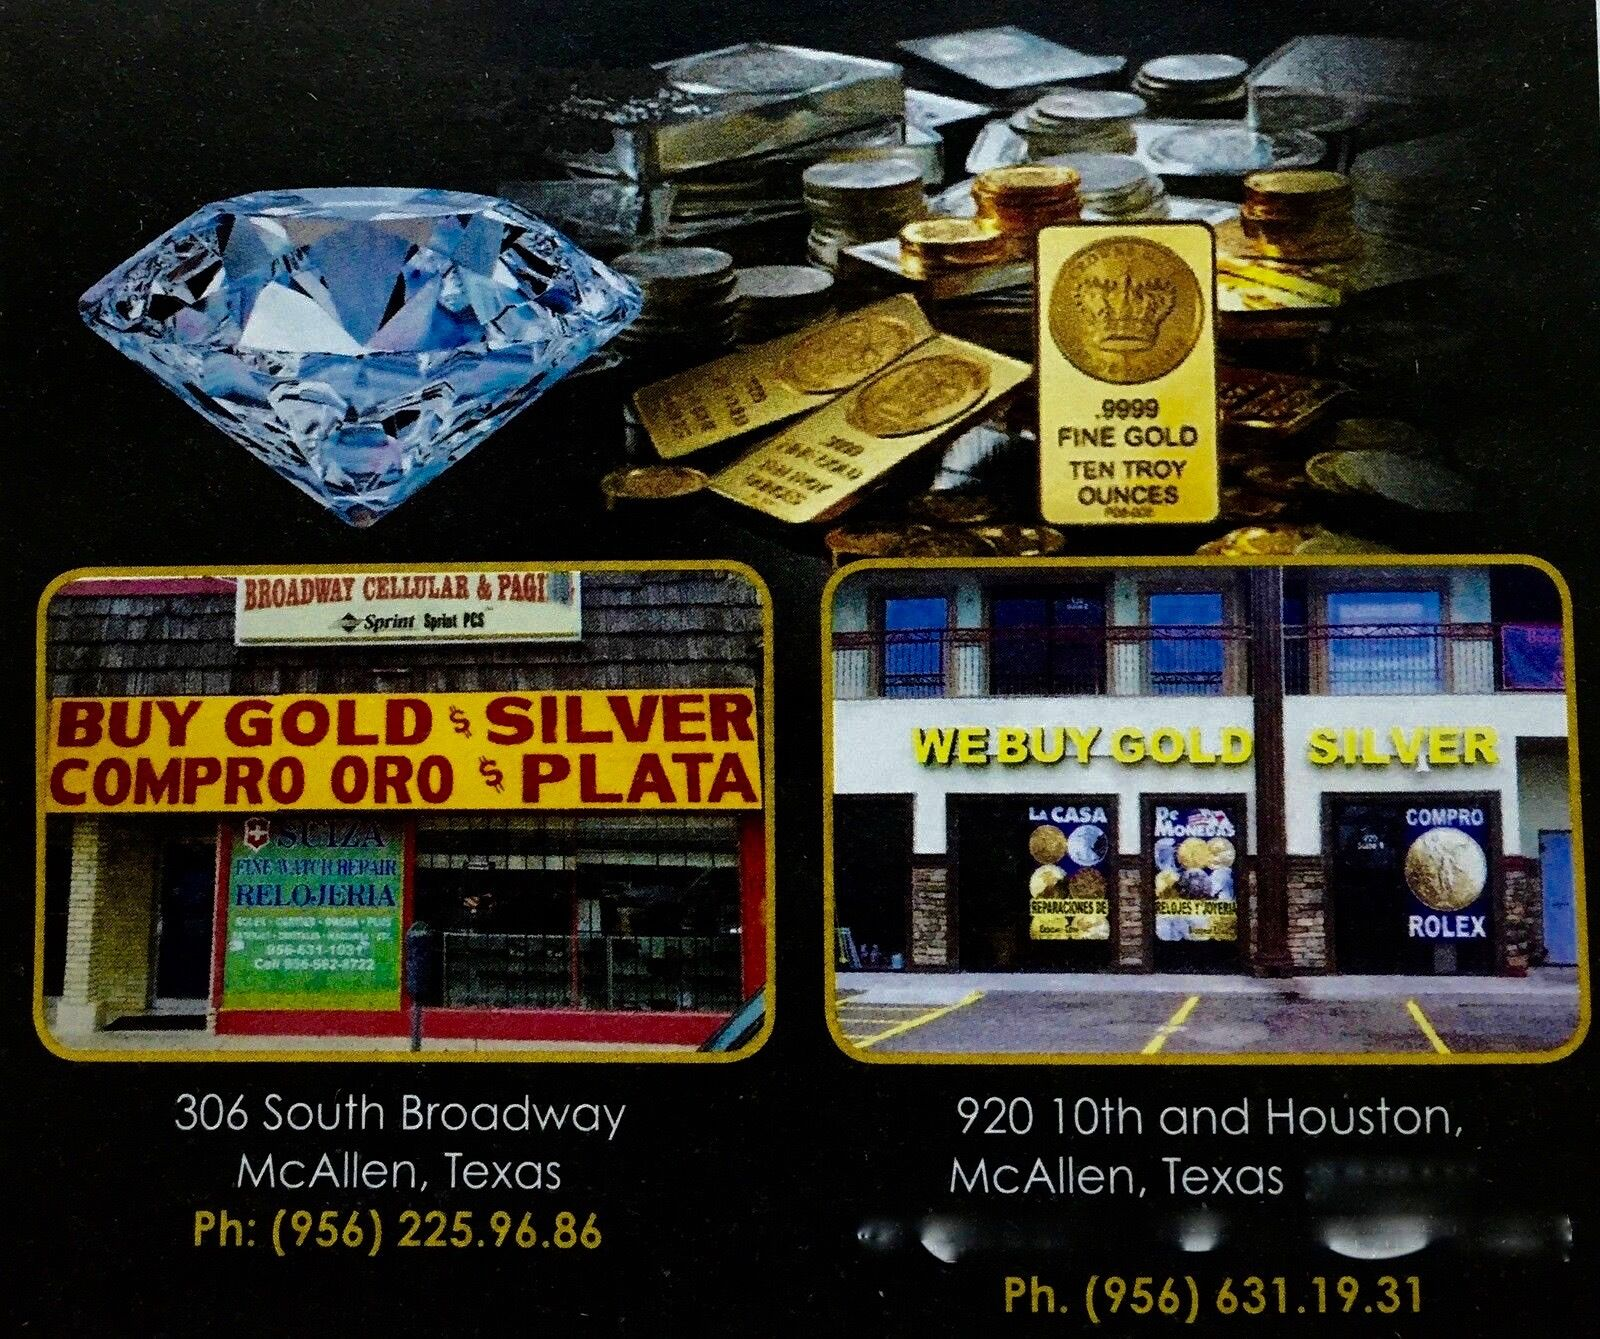 Broadwaycoins and Supplies